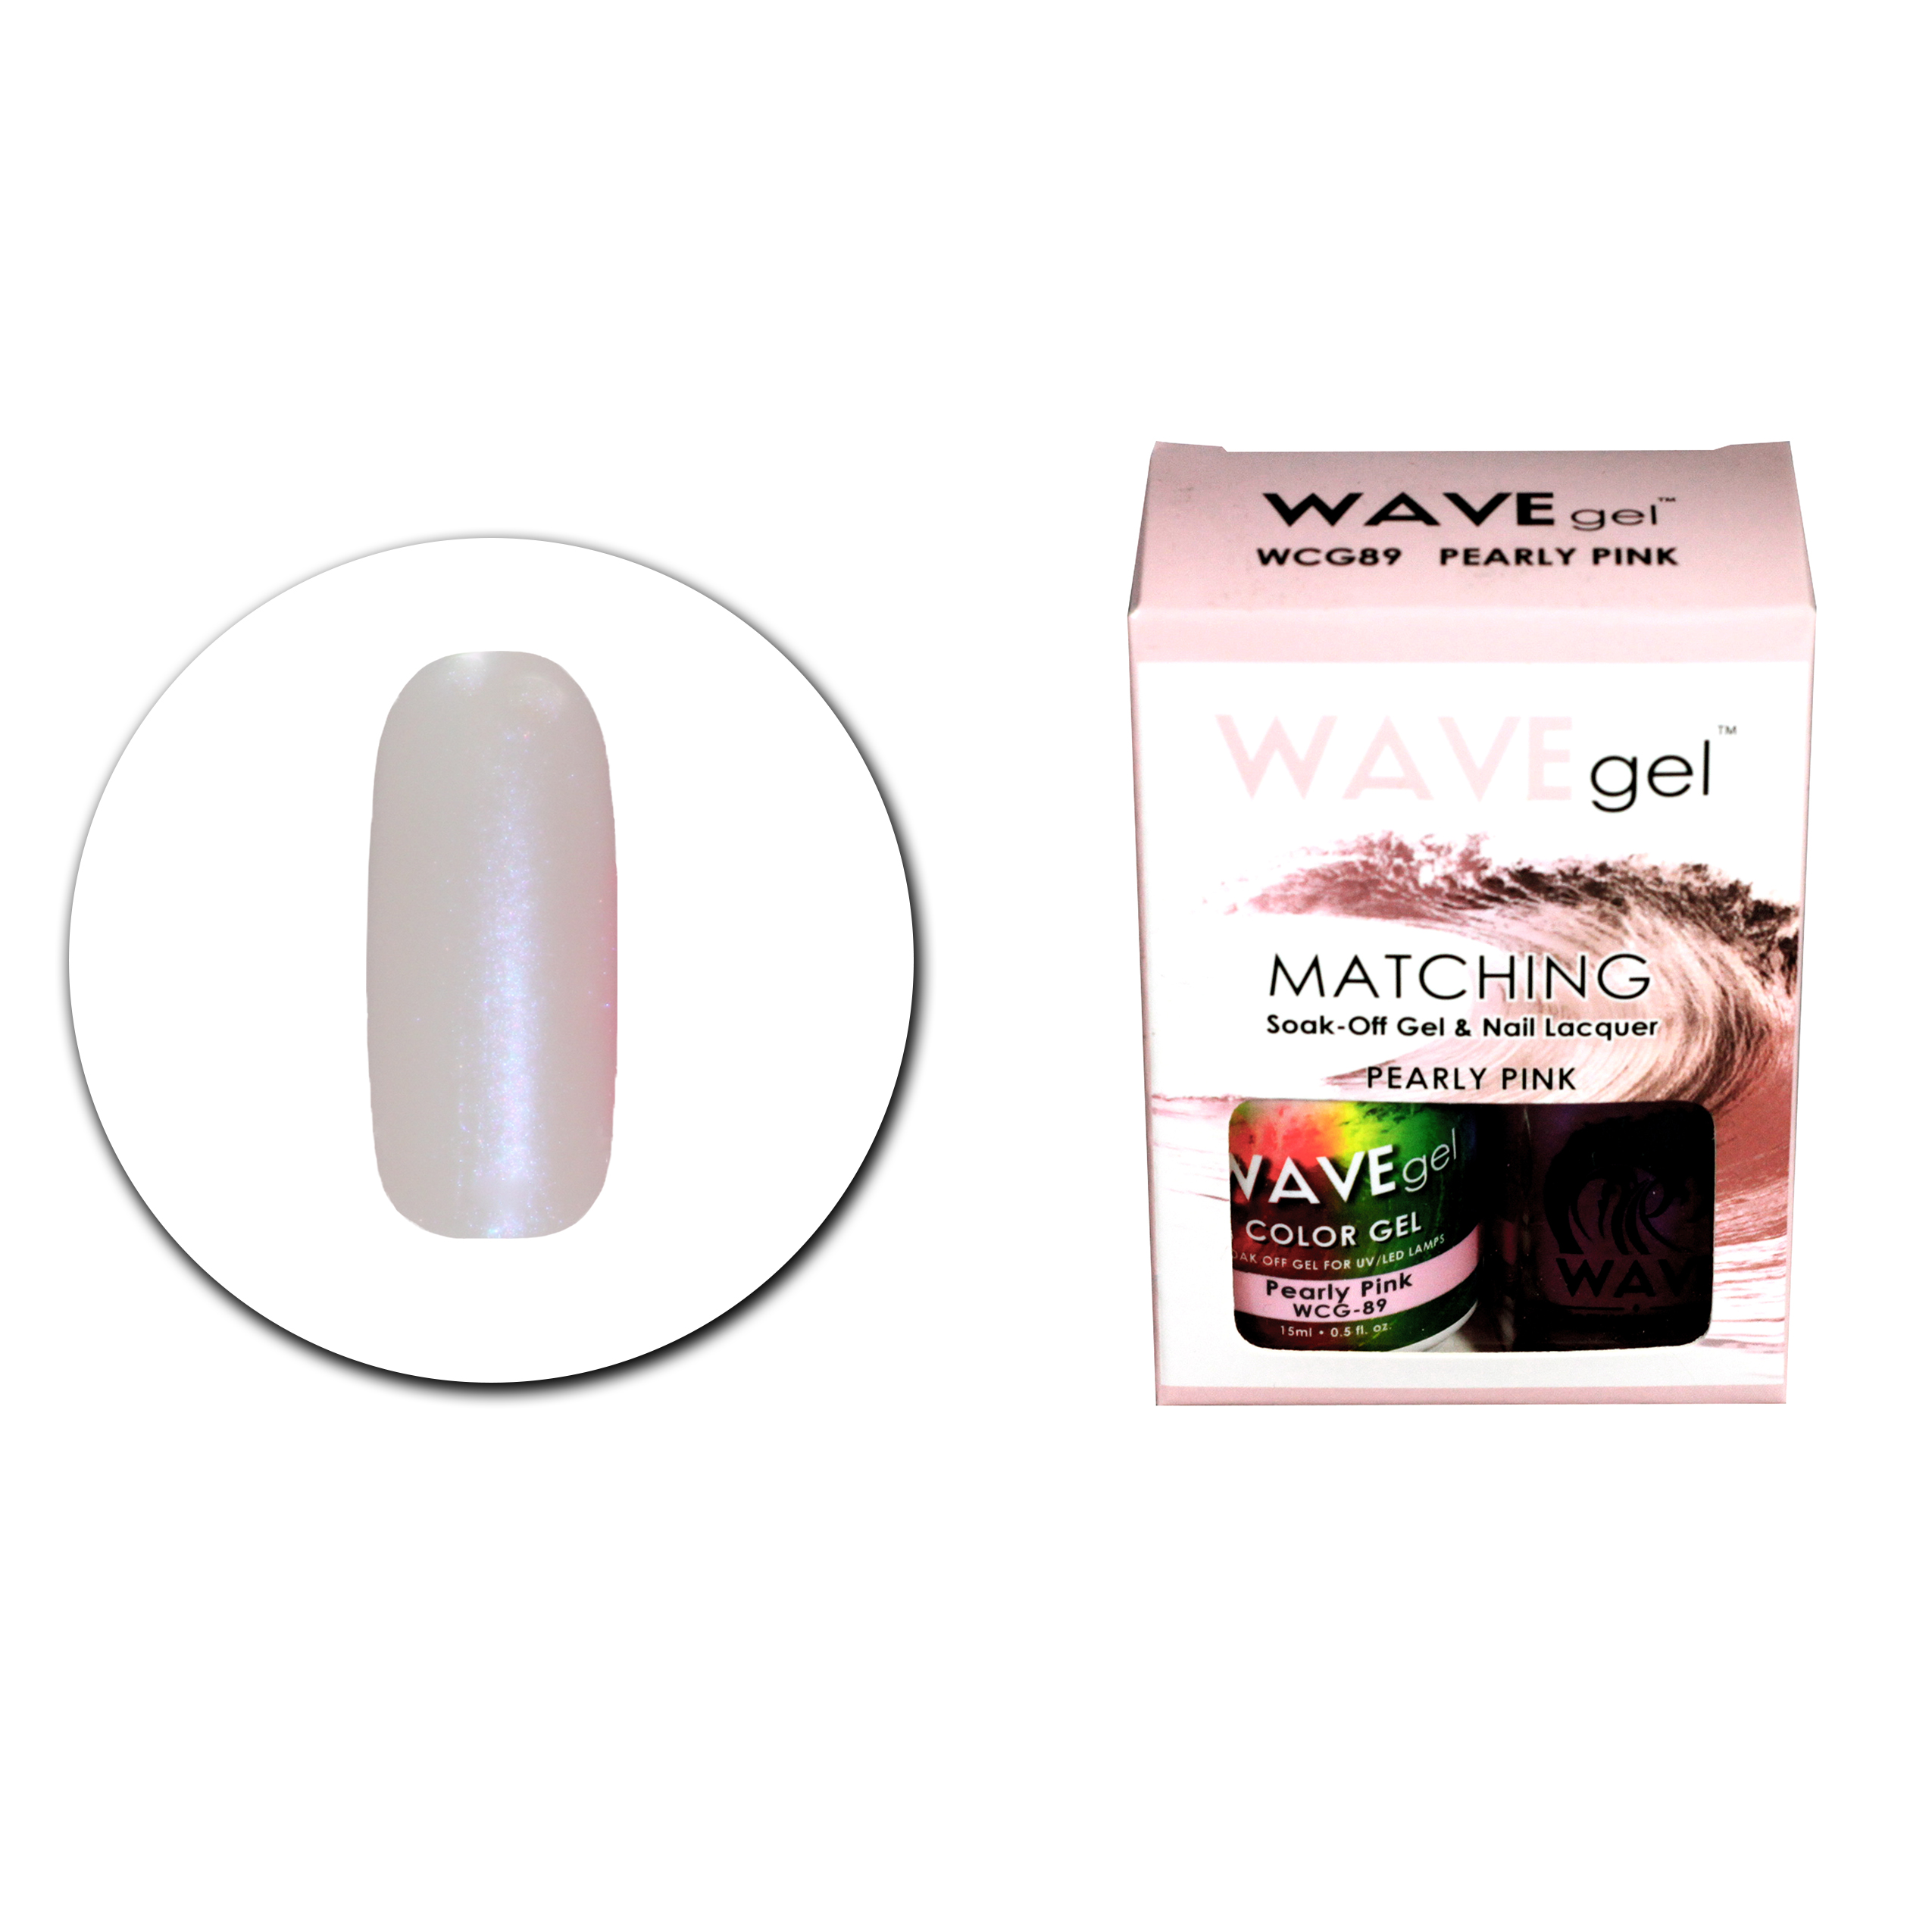 WCG89 PEARLY PINK